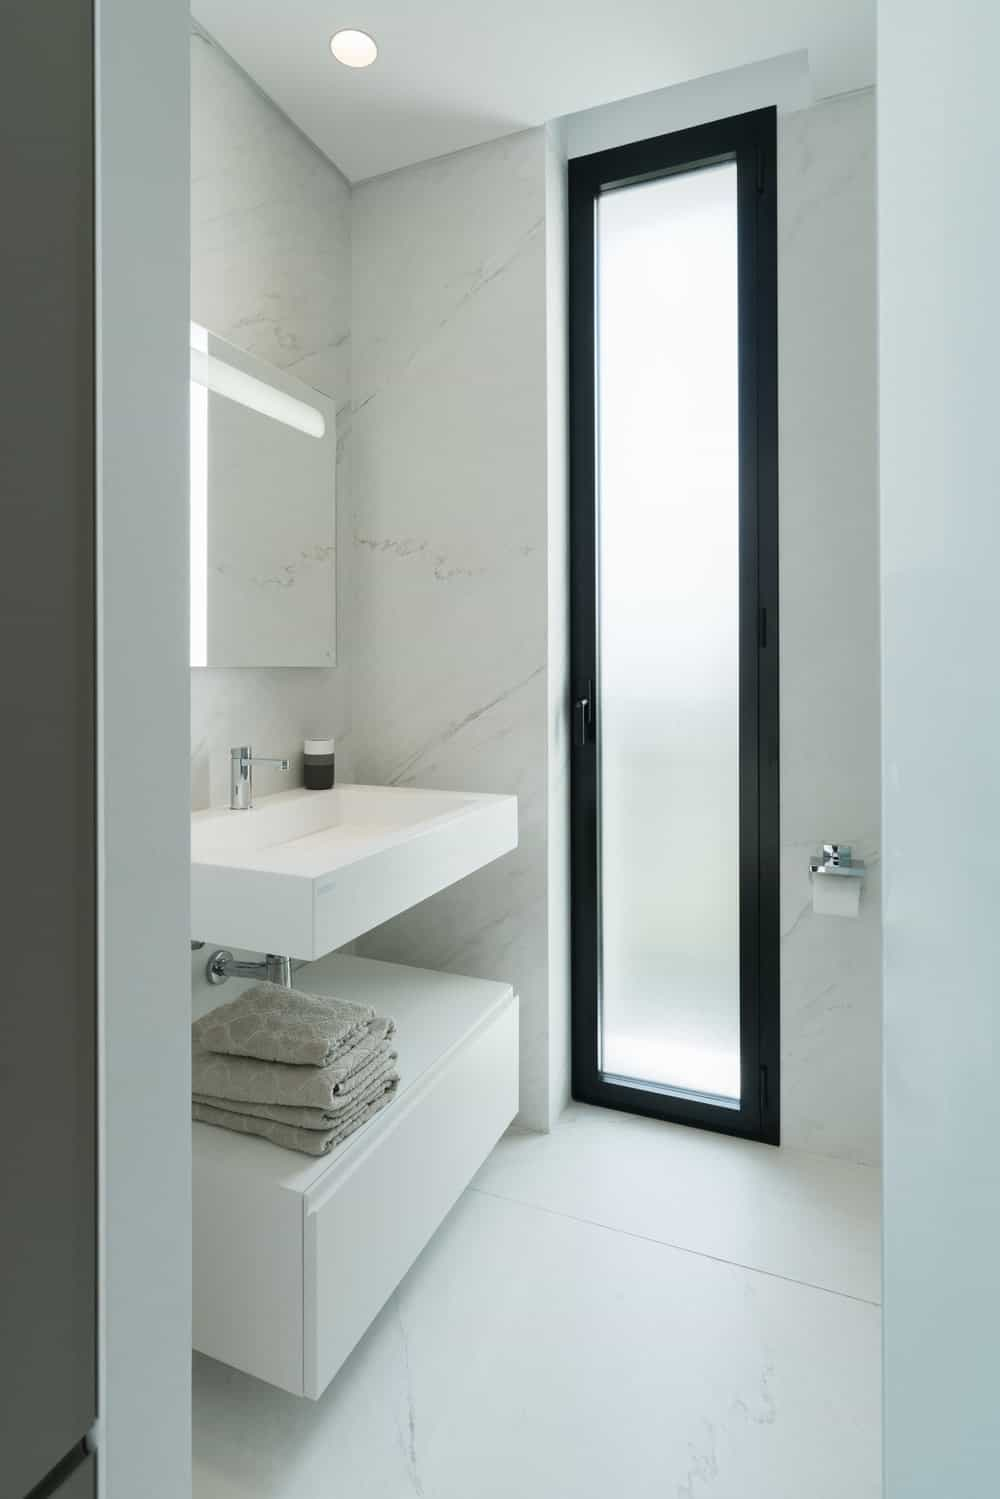 This is a simple minimalist bathroom with a pure white floating sink and vanity topped with a rimless mirror on the side of the shower area's frosted glass door.